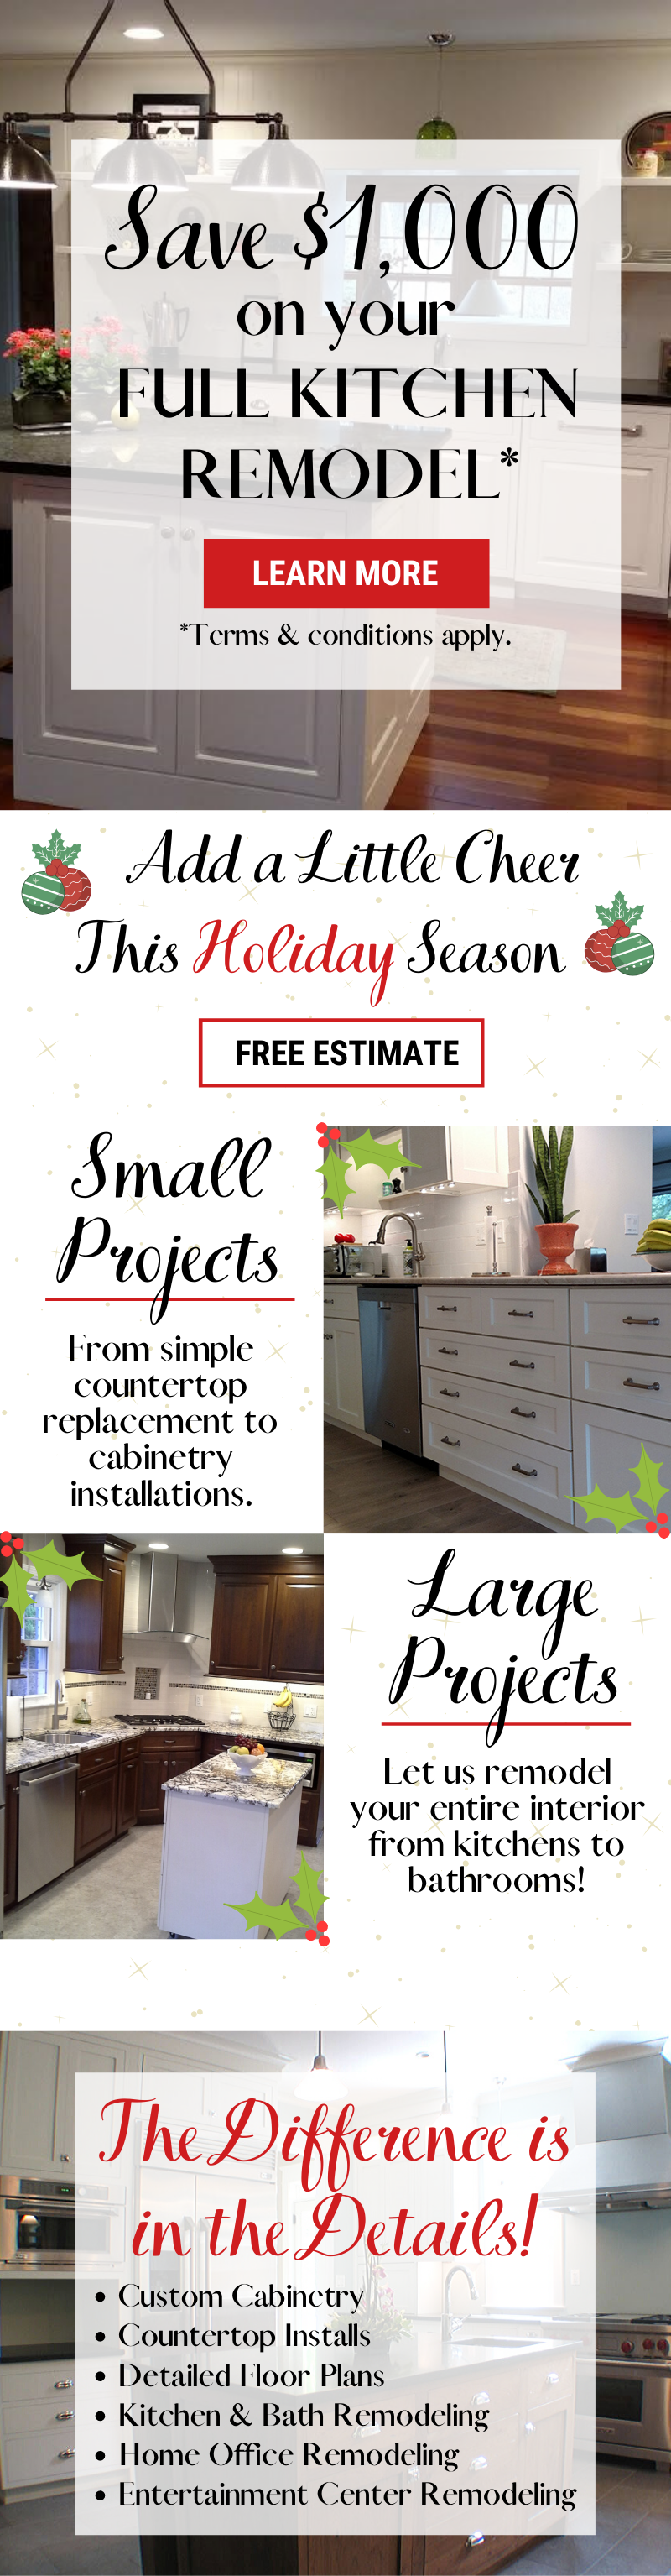 The Perfect Remodeling Gift For Your Home! 2